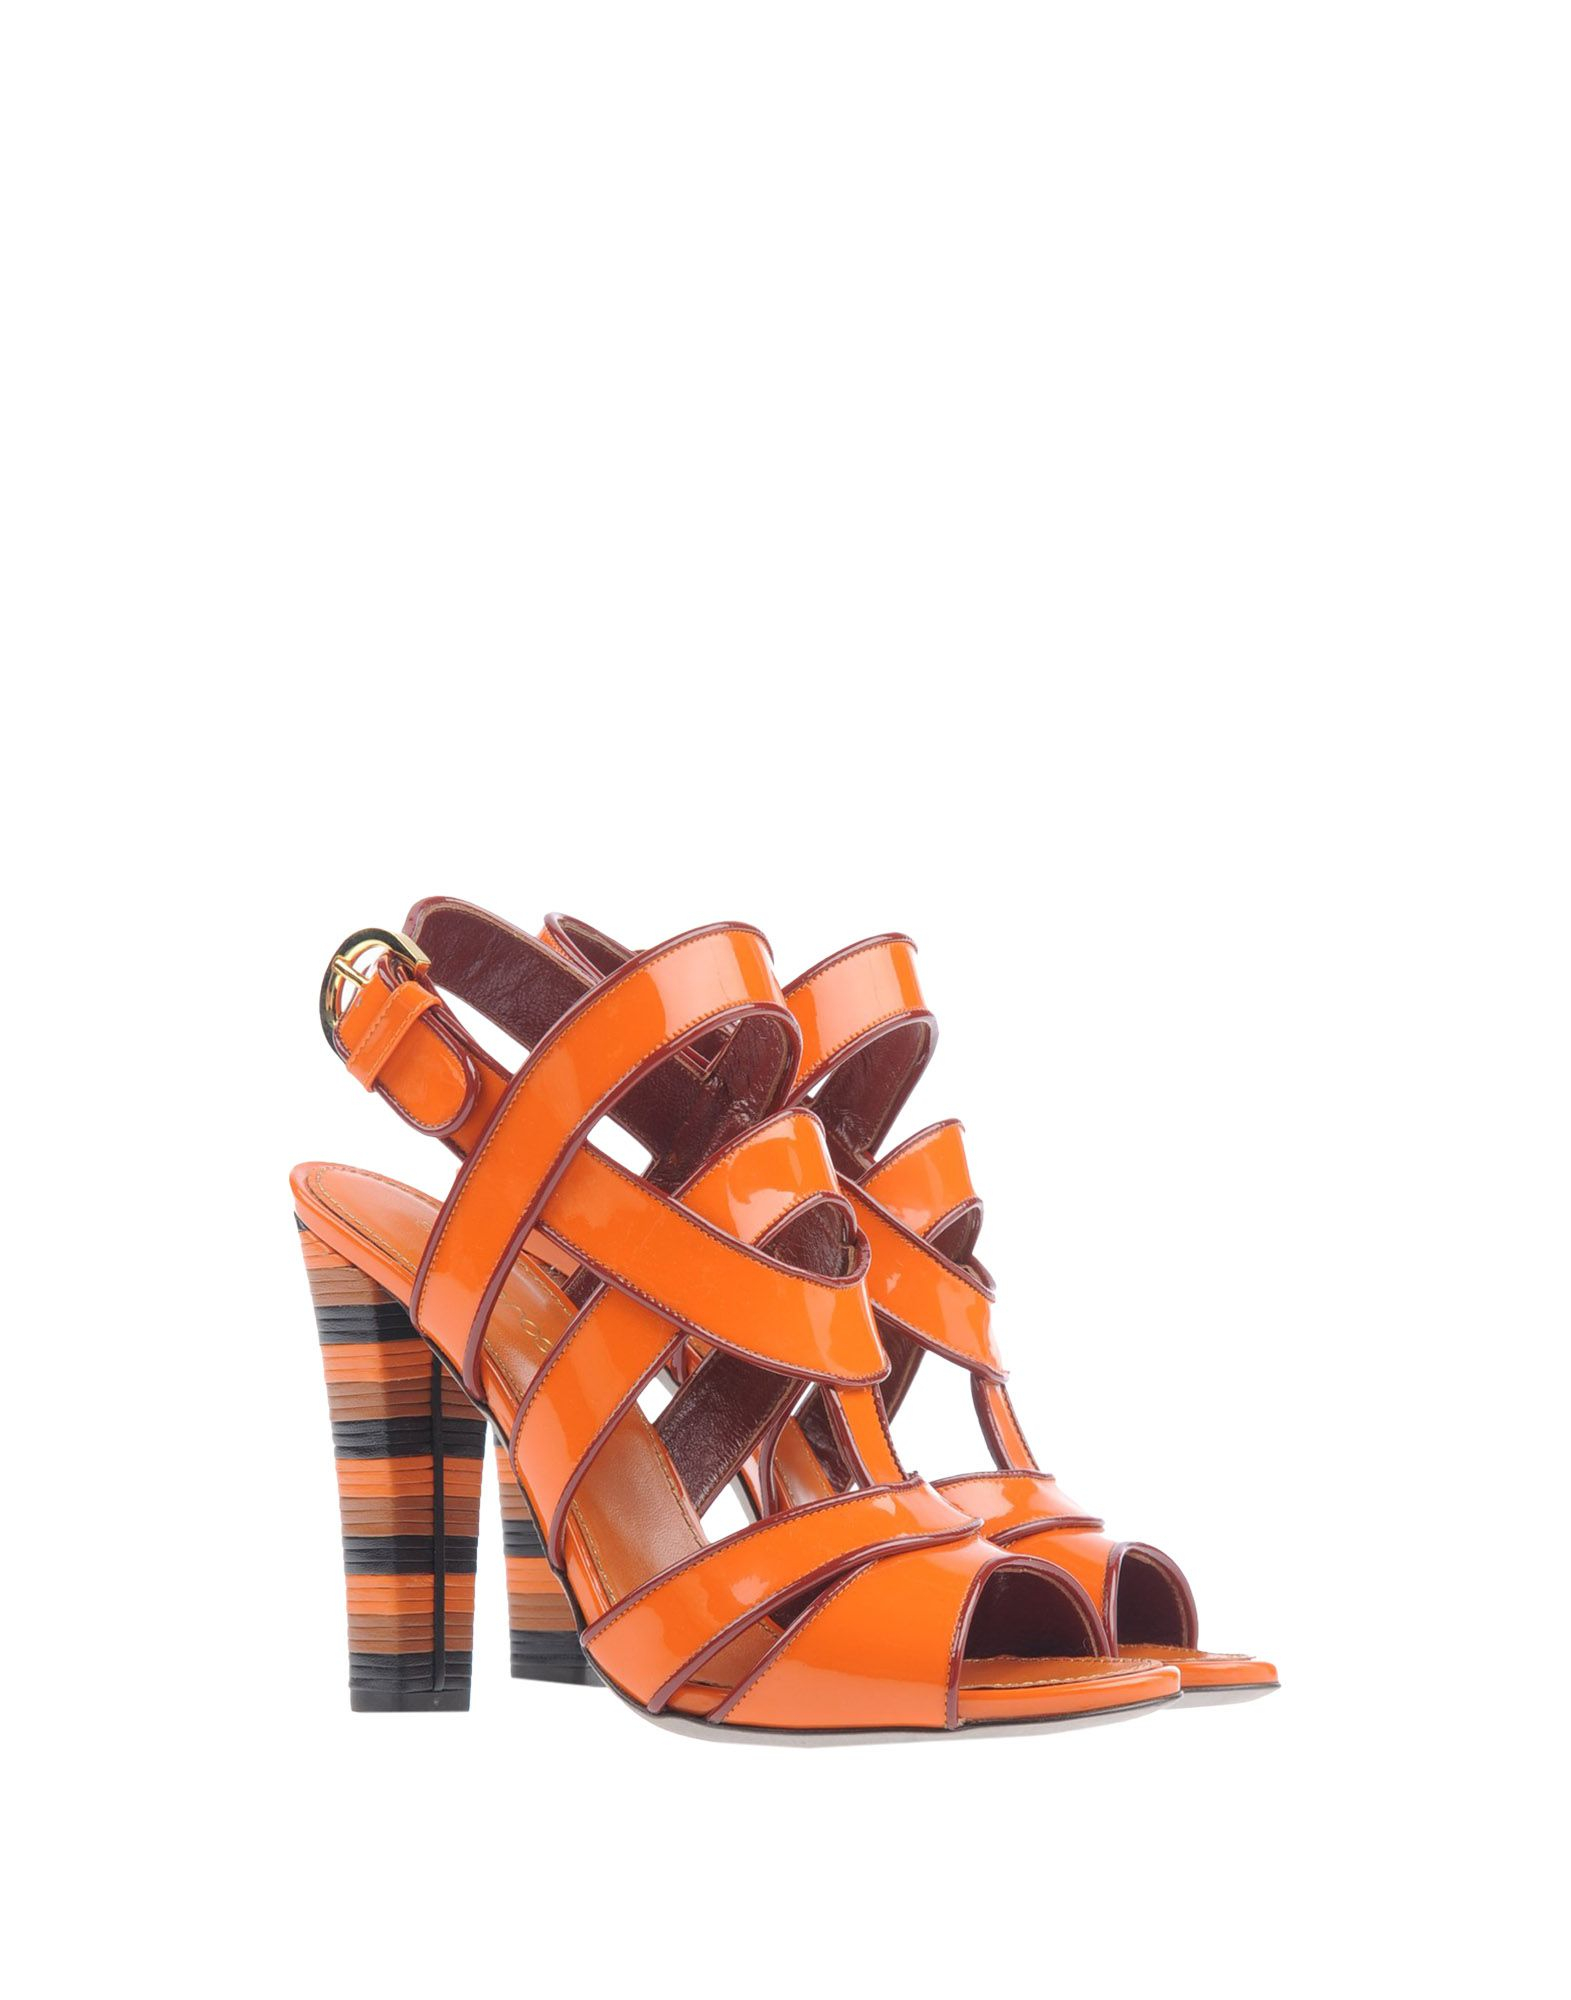 sergio rossi sandals in orange lyst. Black Bedroom Furniture Sets. Home Design Ideas